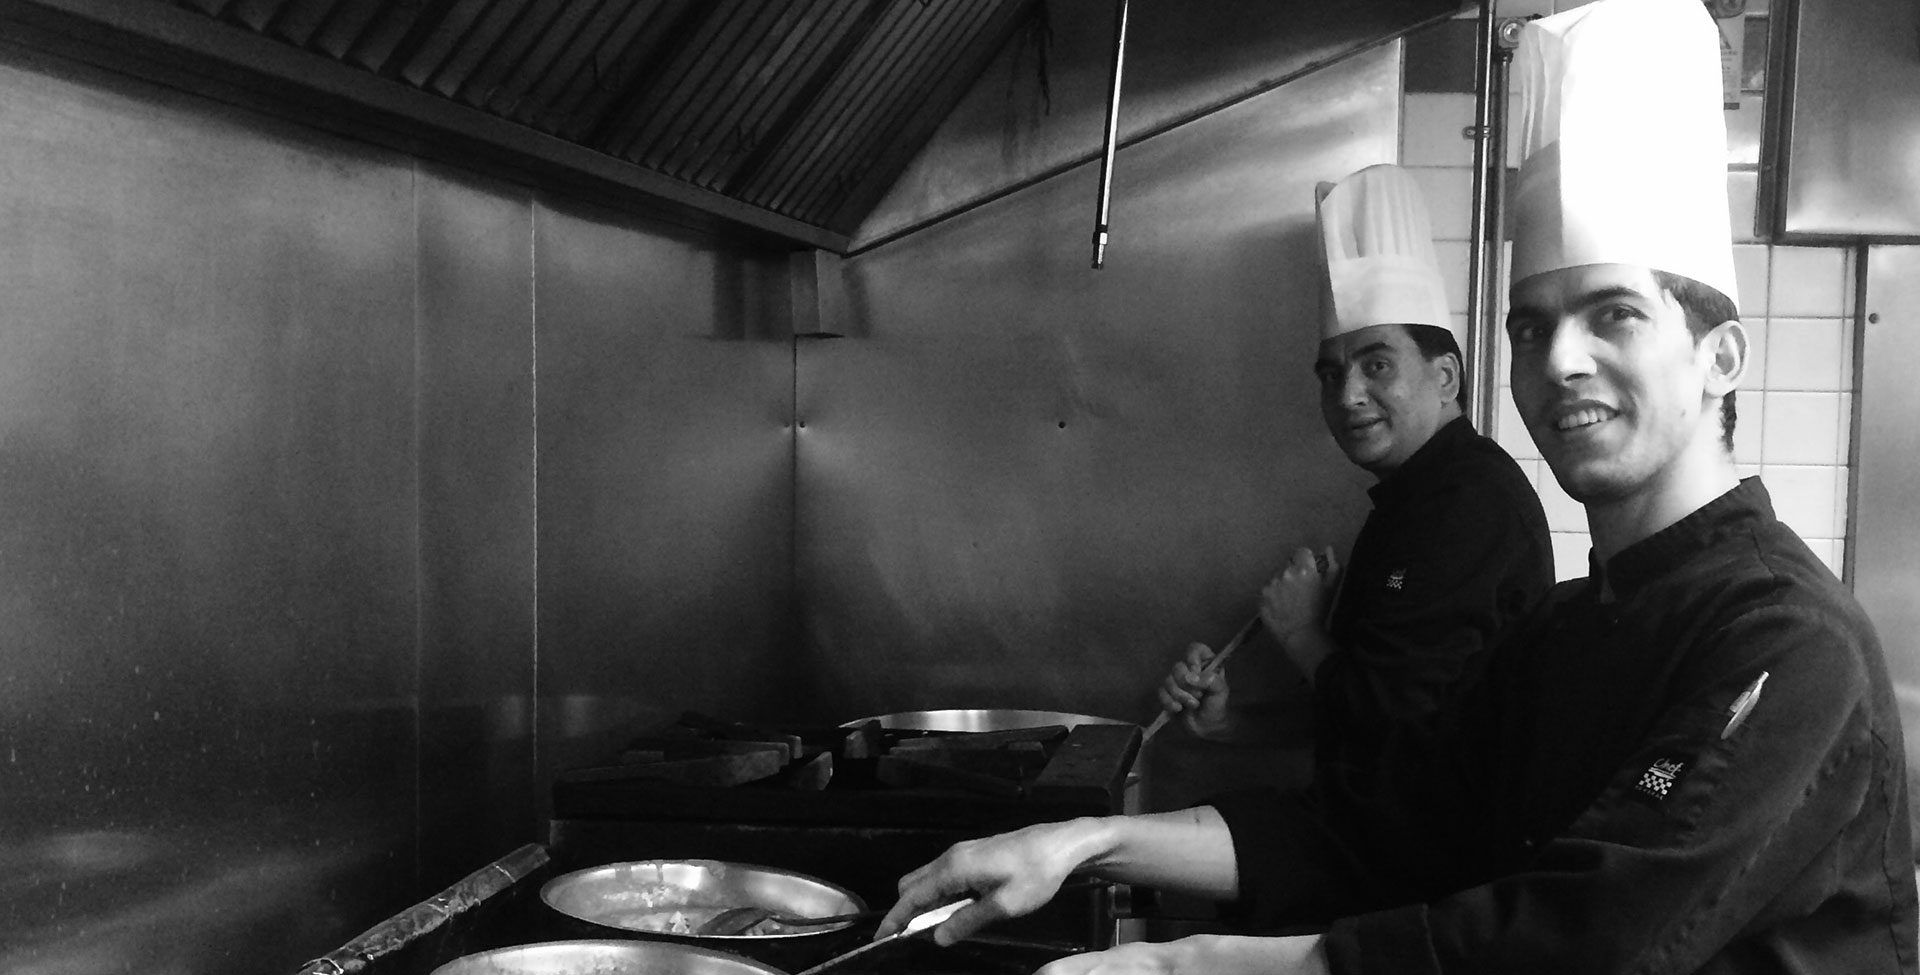 A black and white photo of two chefs wearing tall chef's hats at work over gas ranges and skillets in the kitchen at the Tandoor & Grill, the onsite restaurant at the Stanford Fernie Resort.